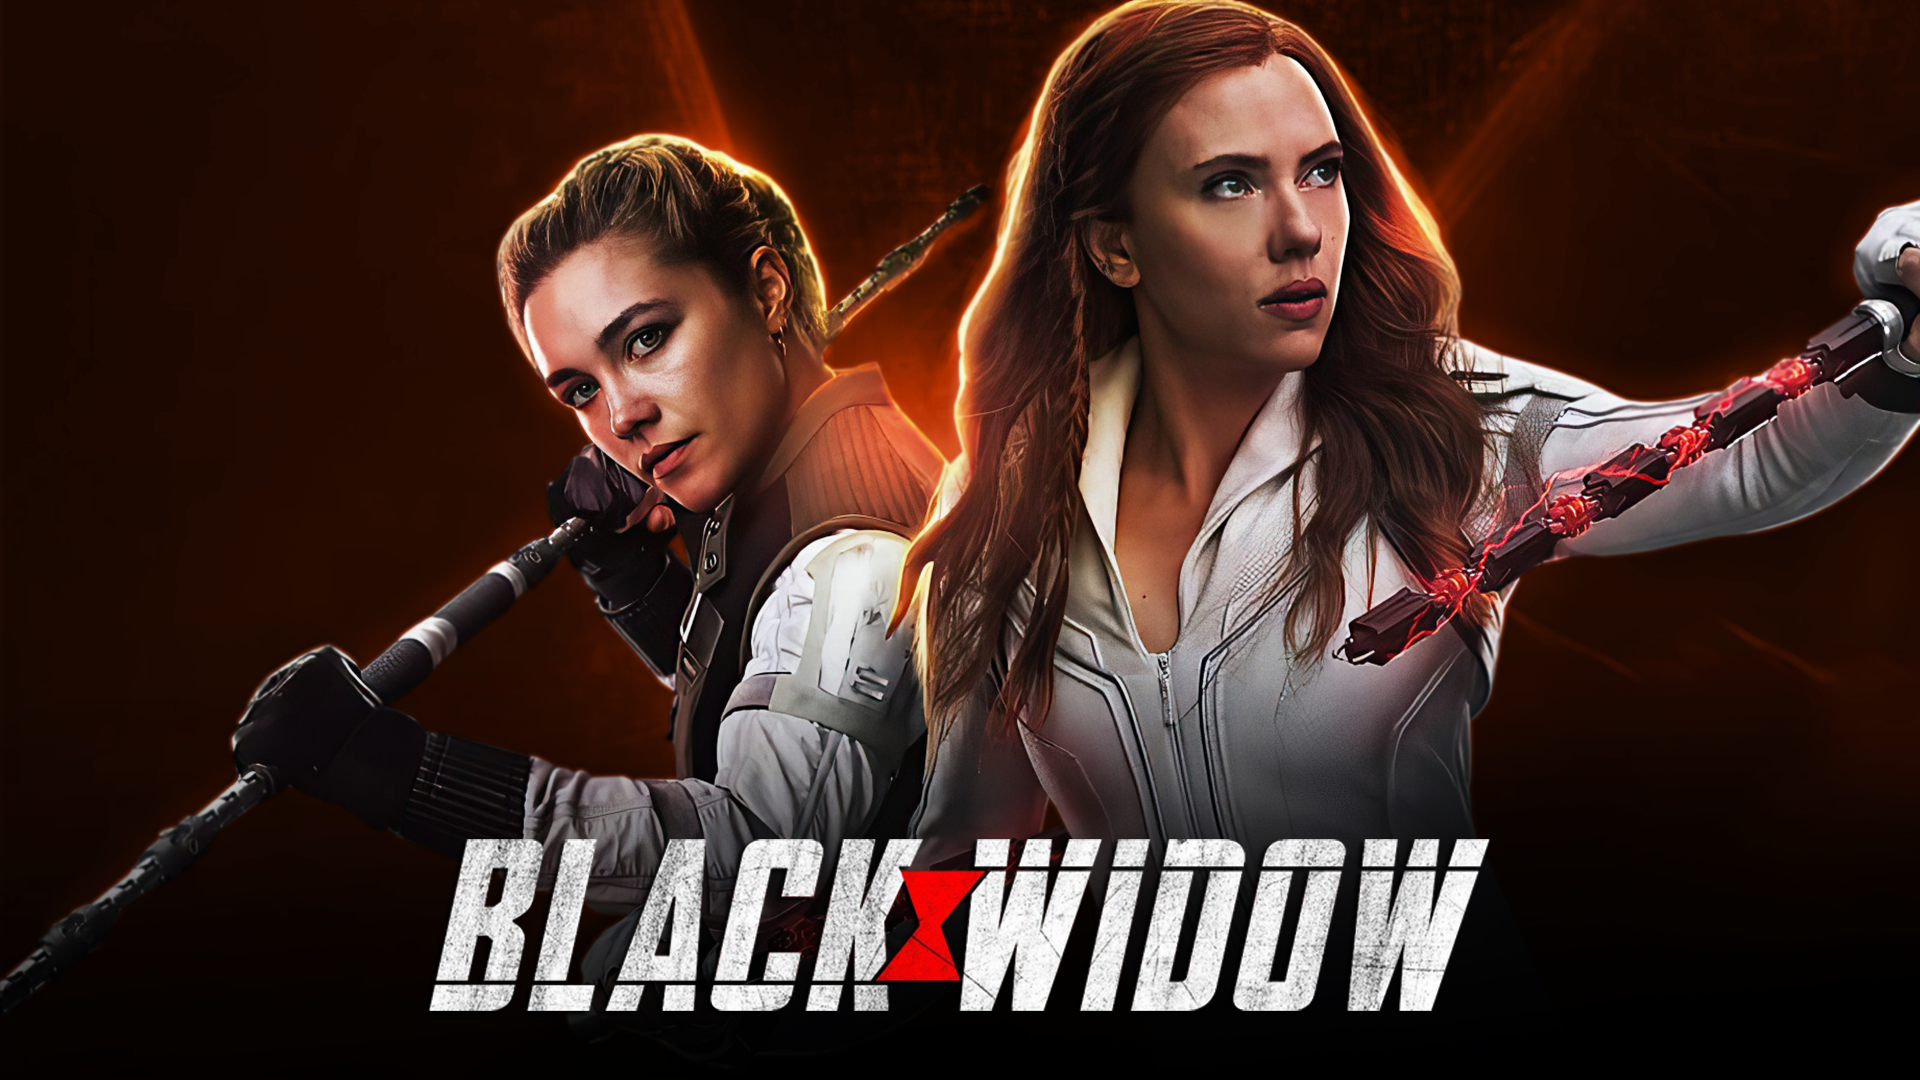 Marvel gives Black Widow one more thrilling mission